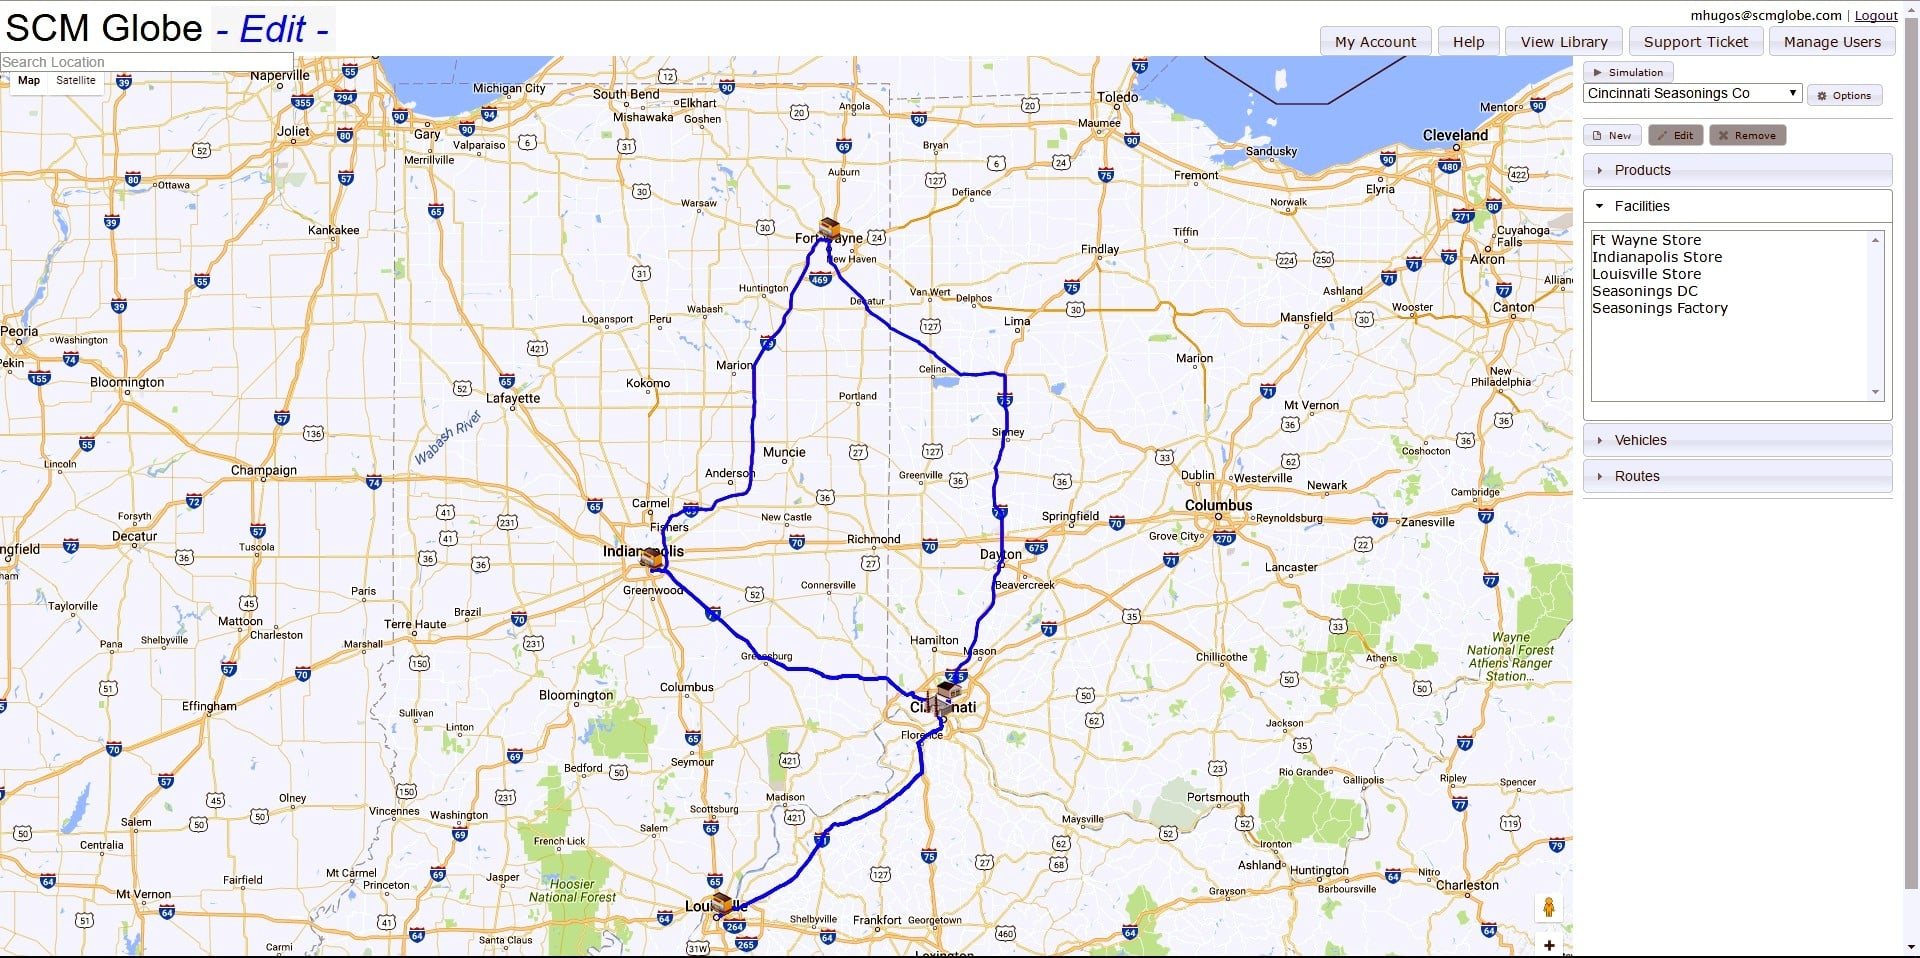 A map of Cincinnati with a route highlighted on it.